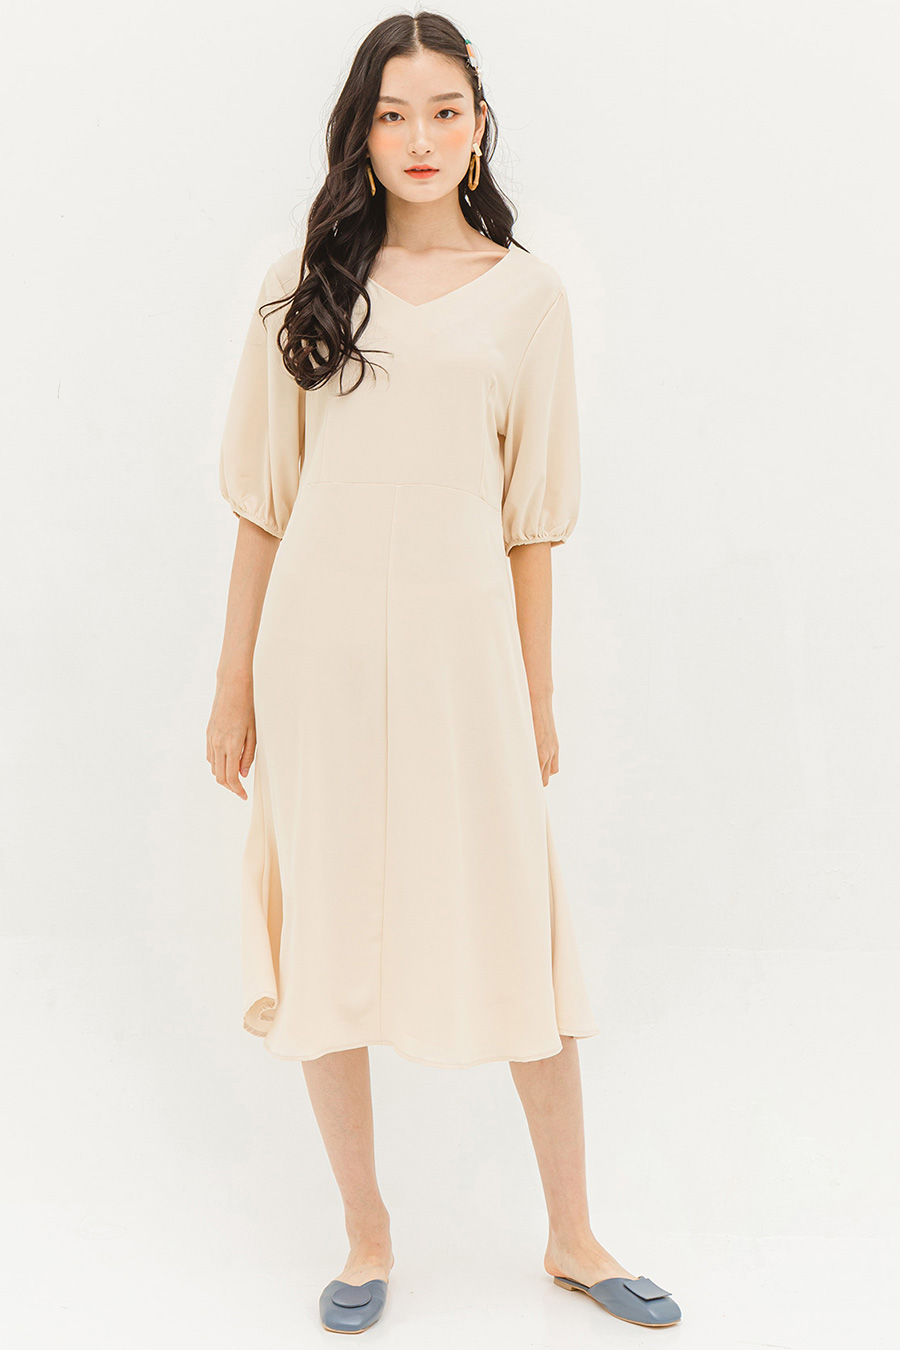 CLARICE DRESS - BISCOTTI